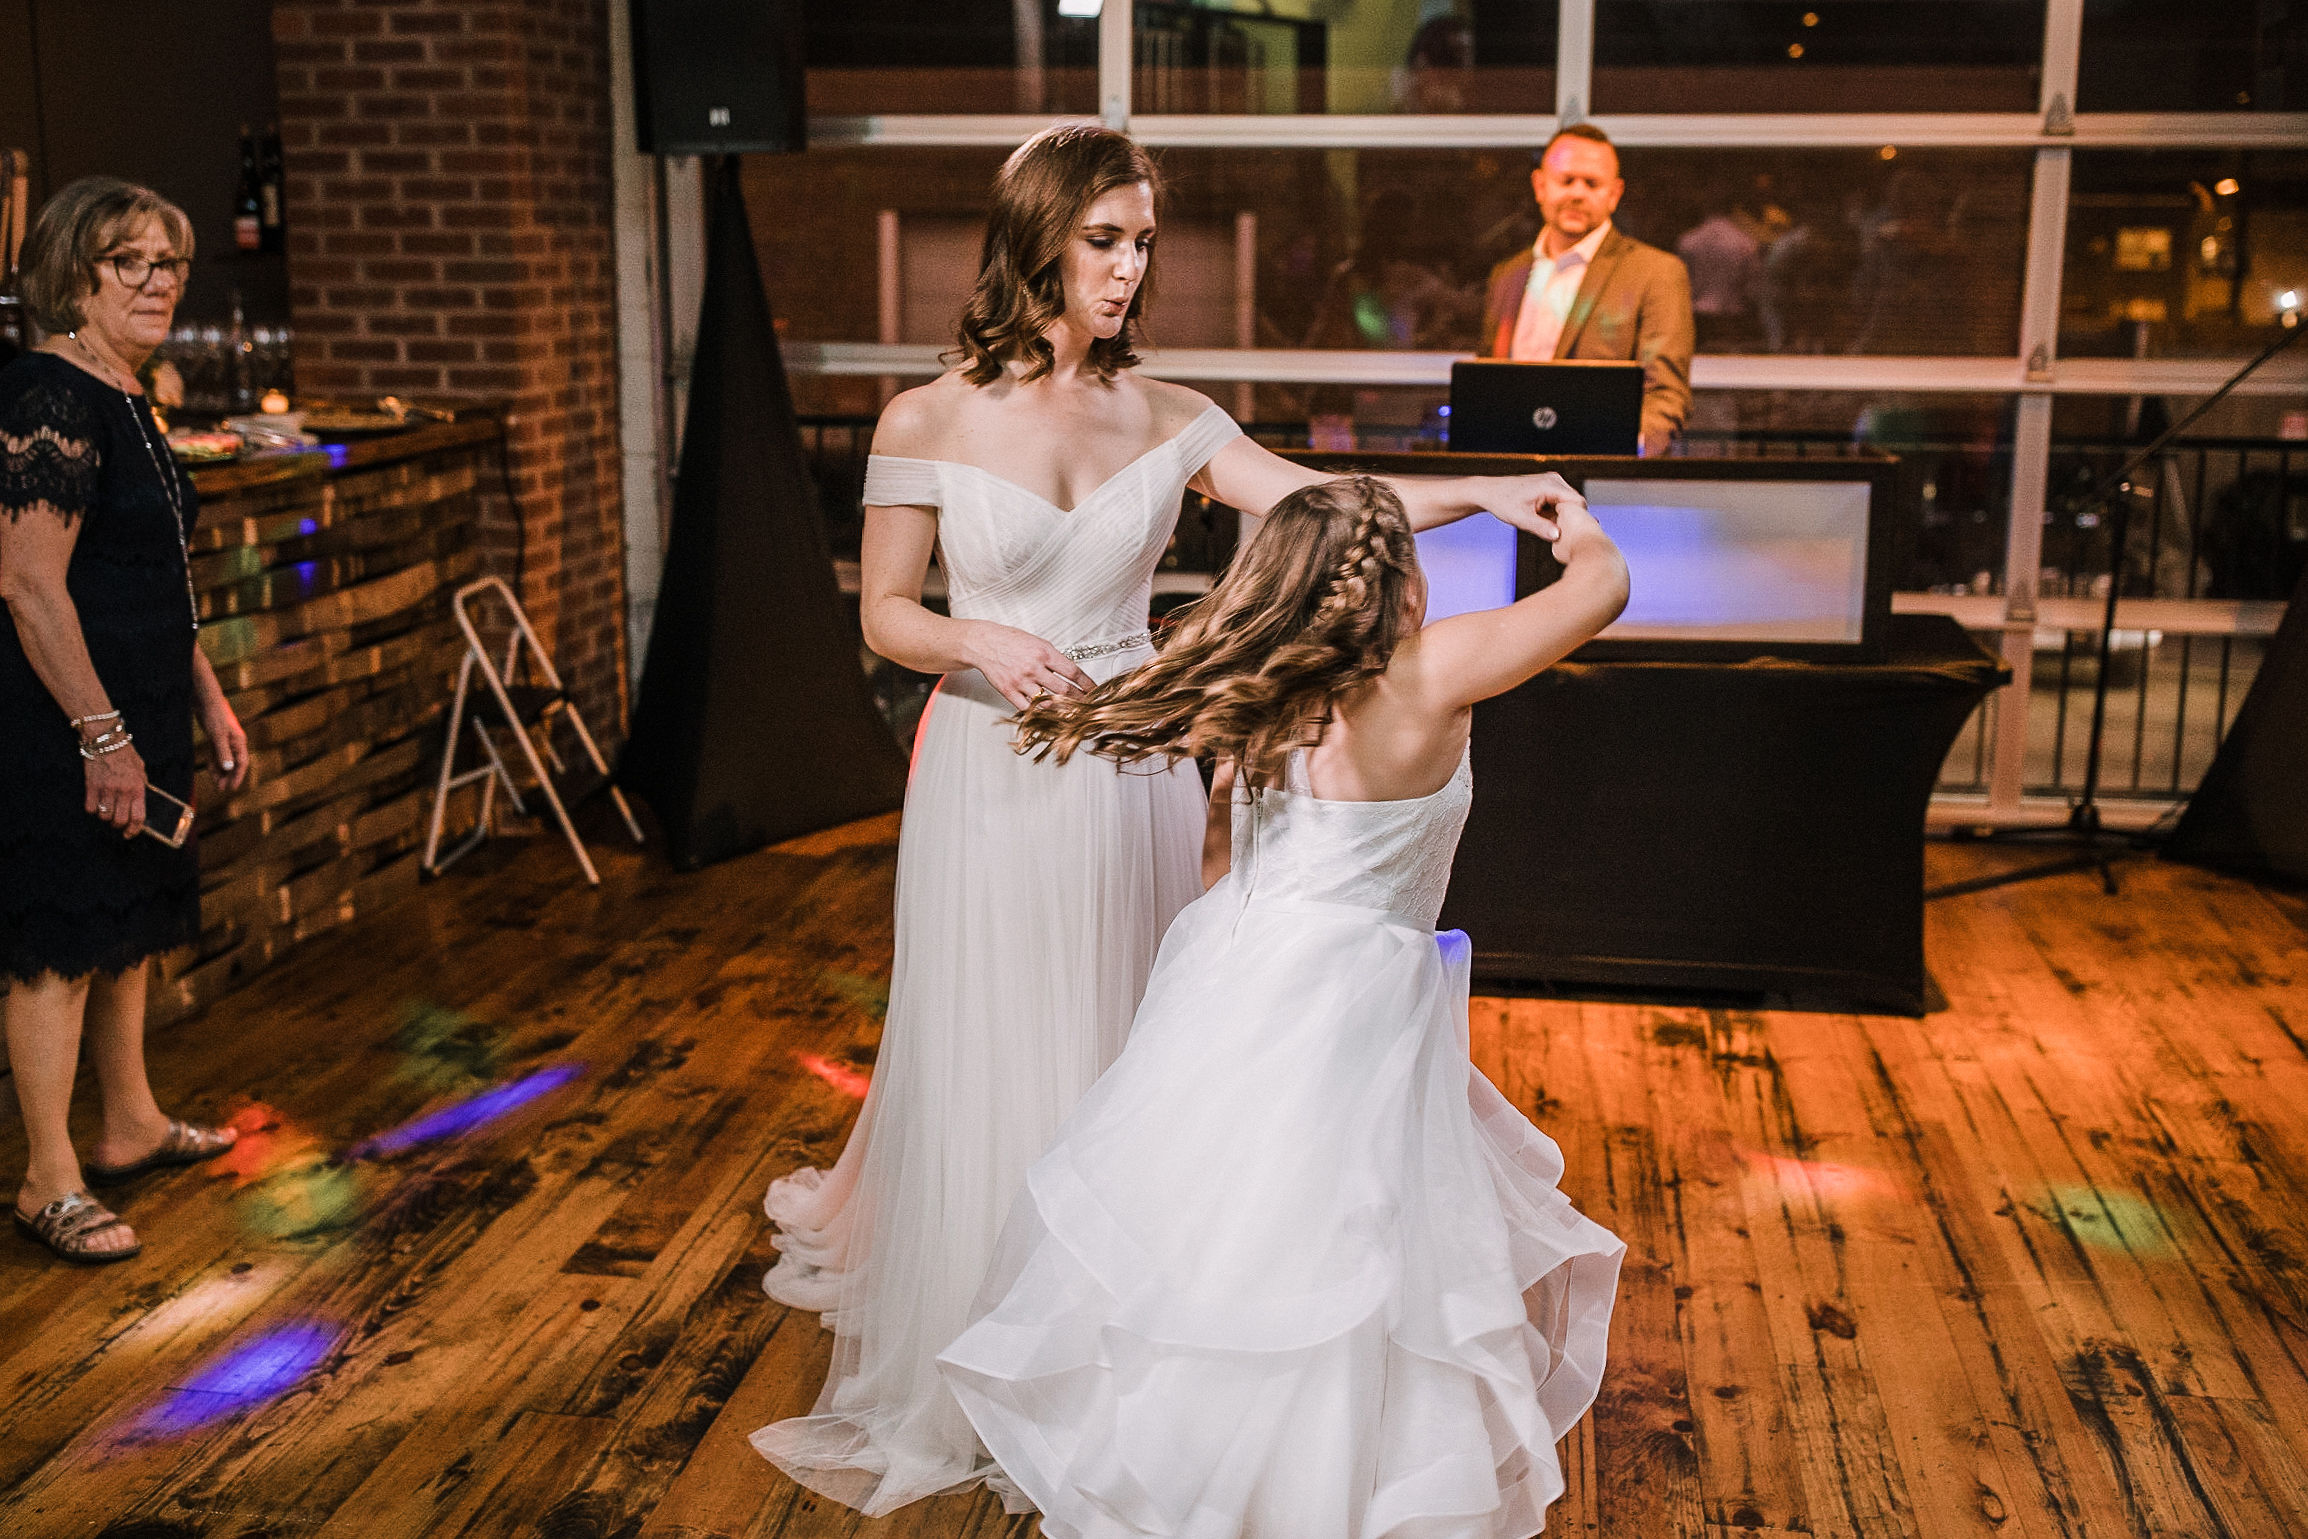 bride and flower girl dancing at reception at City Winery in Washington DC